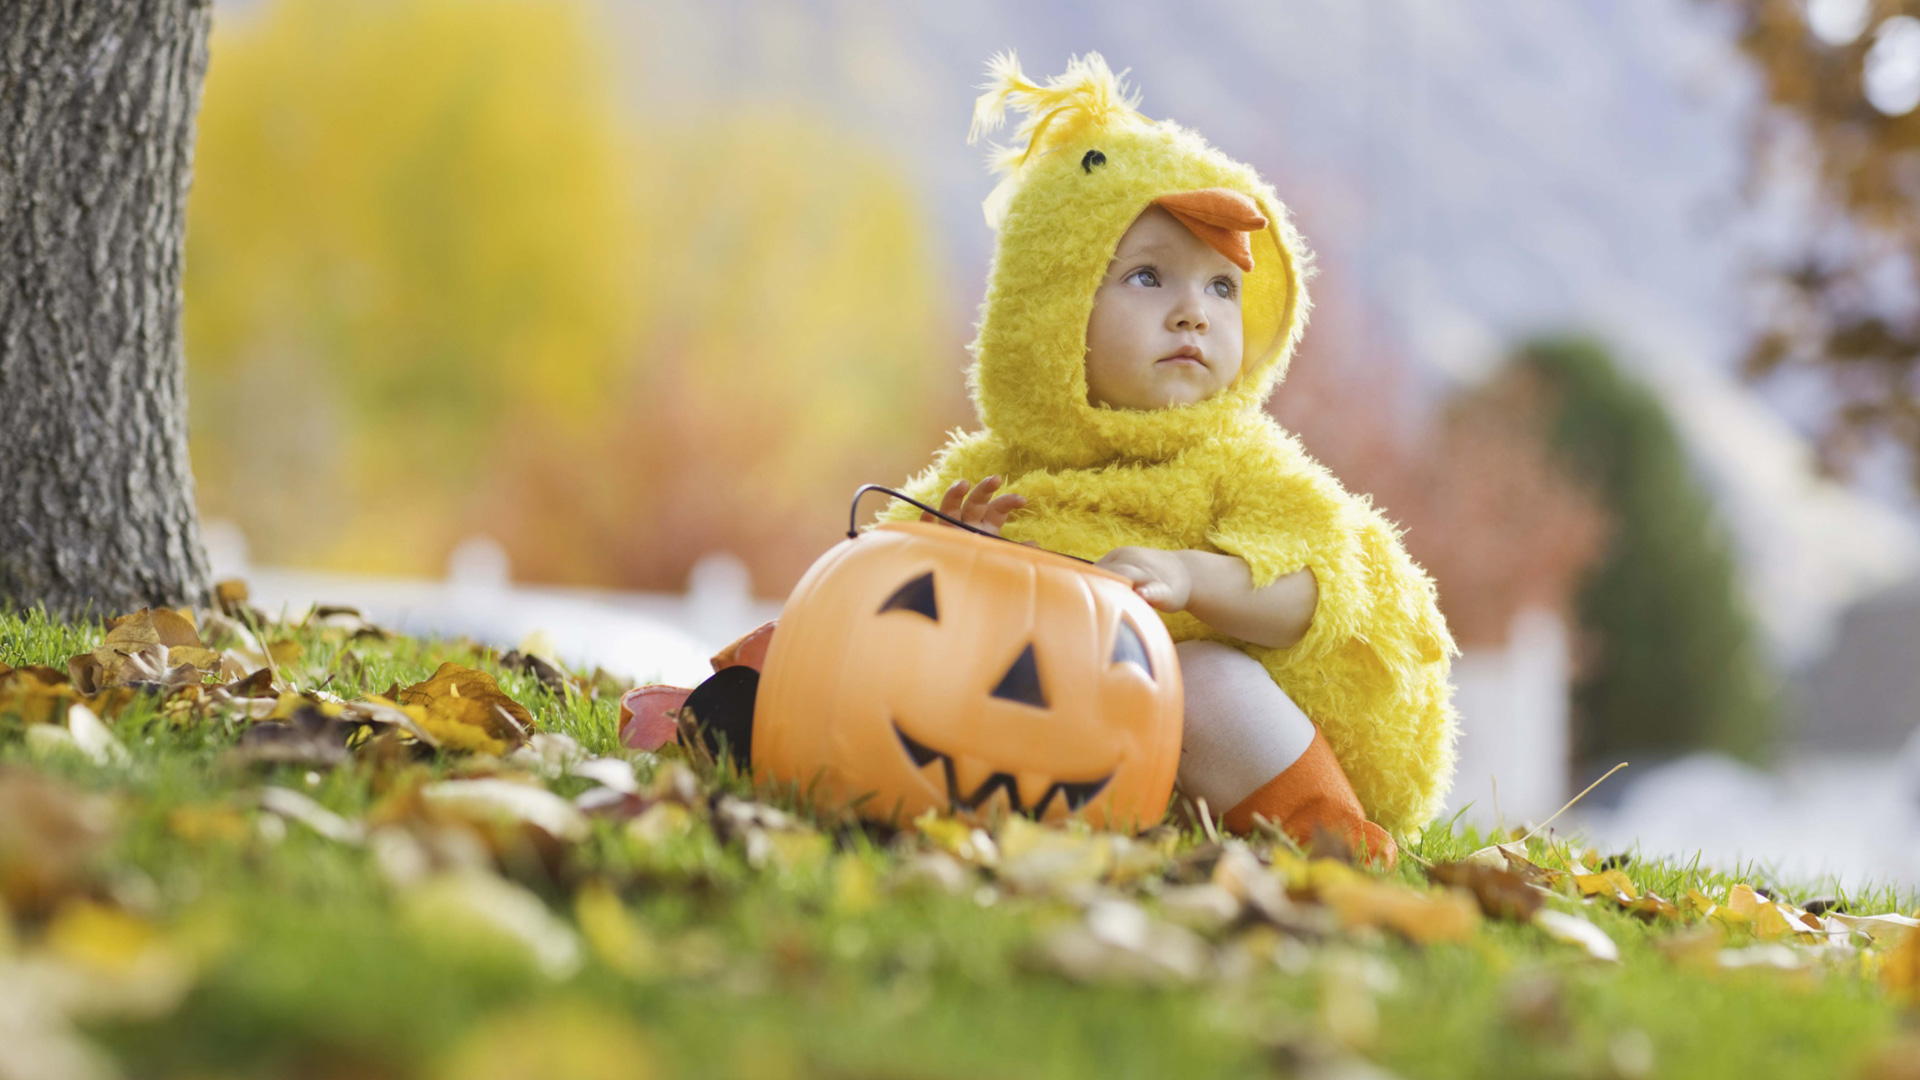 Halloween snack ideas for toddlers and babies